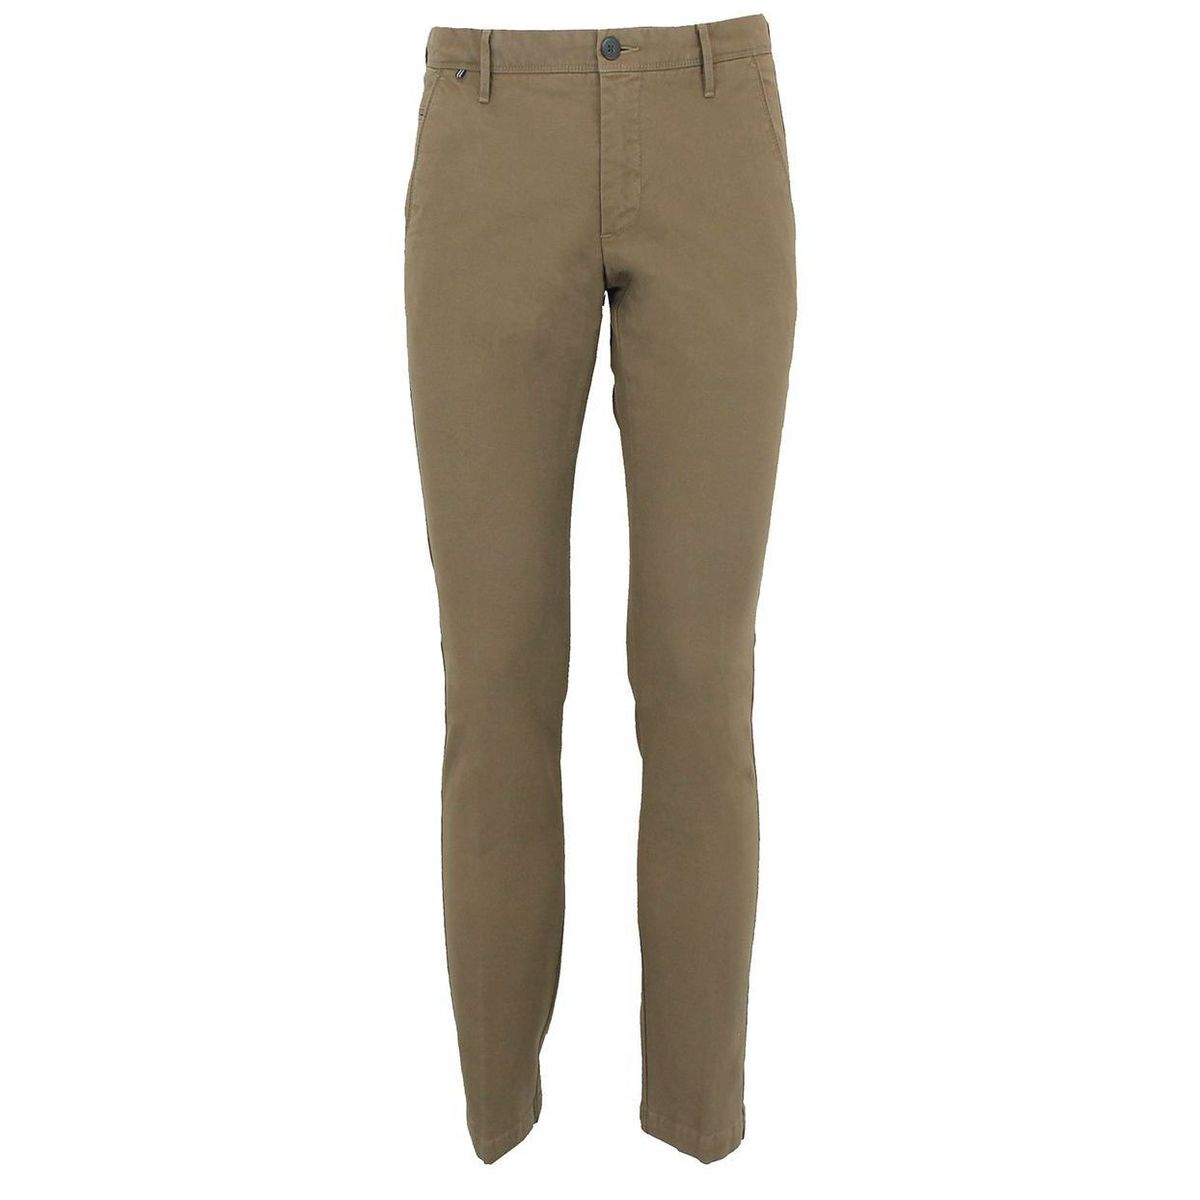 Pantalone in unica tinta Beige At.p.co